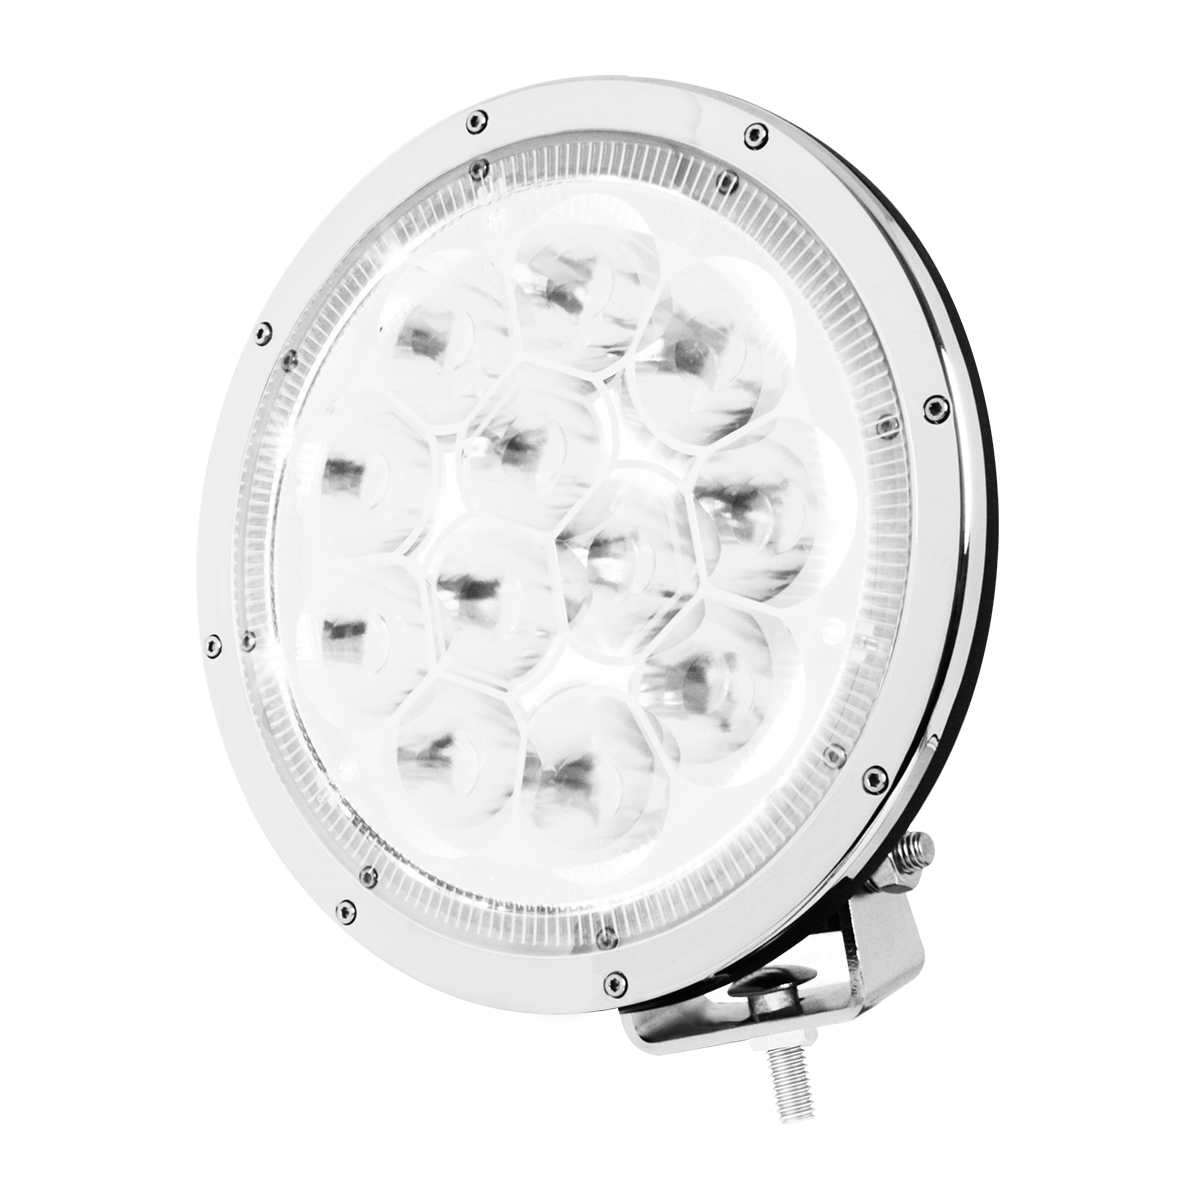 76357 Extra Large High Power LED Work/Spot/Aux/Driving/Position Light